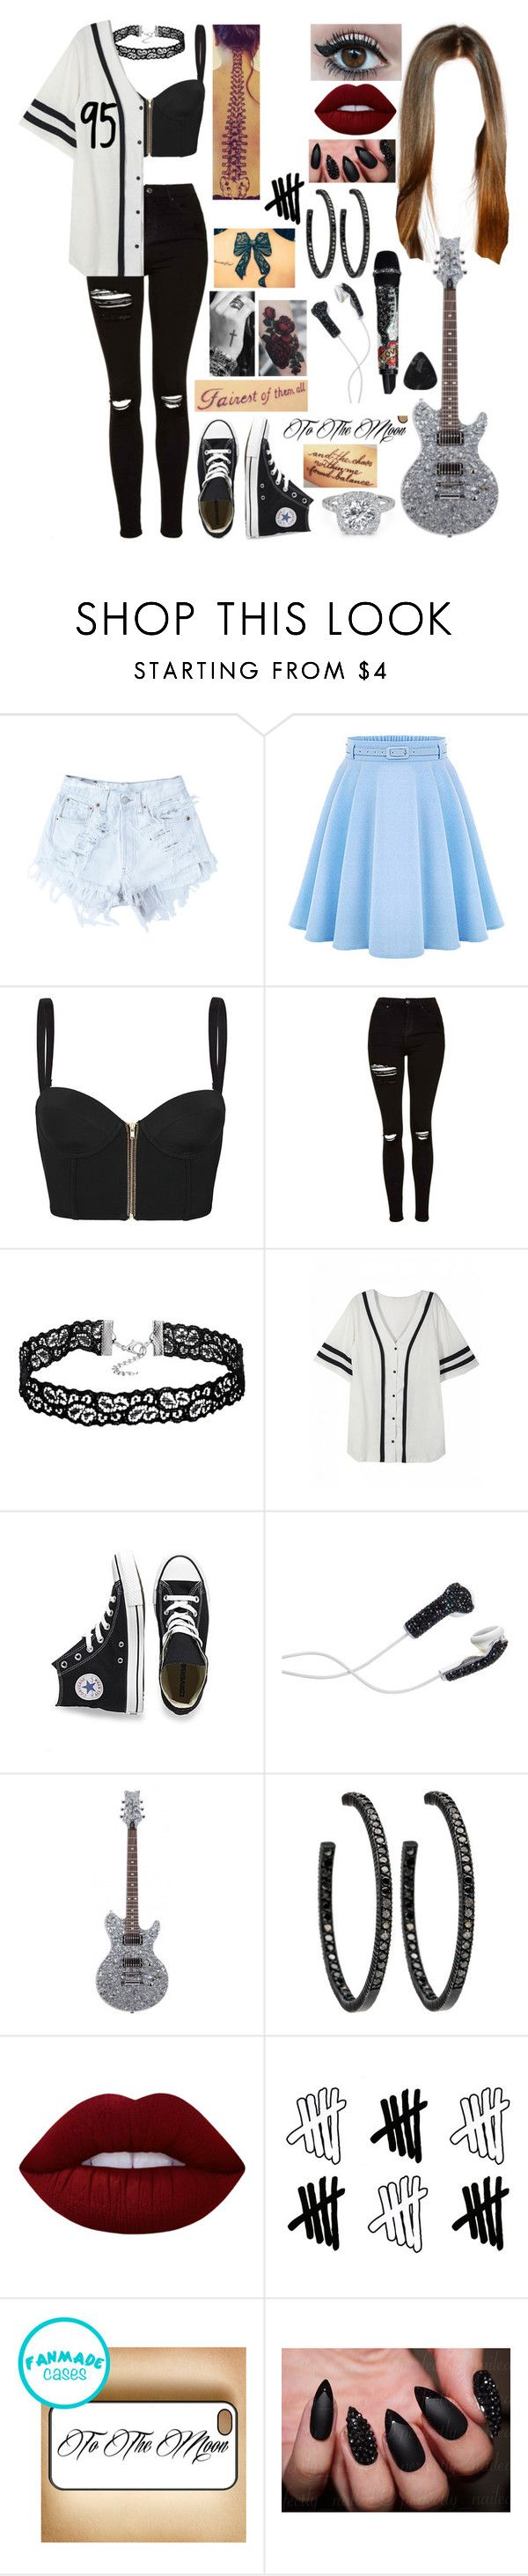 """Untitled #577"" by skh-siera18 ❤ liked on Polyvore featuring Levi's, sass & bide, Topshop, Converse, DEOS, Lime Crime, Disney and Samsung"